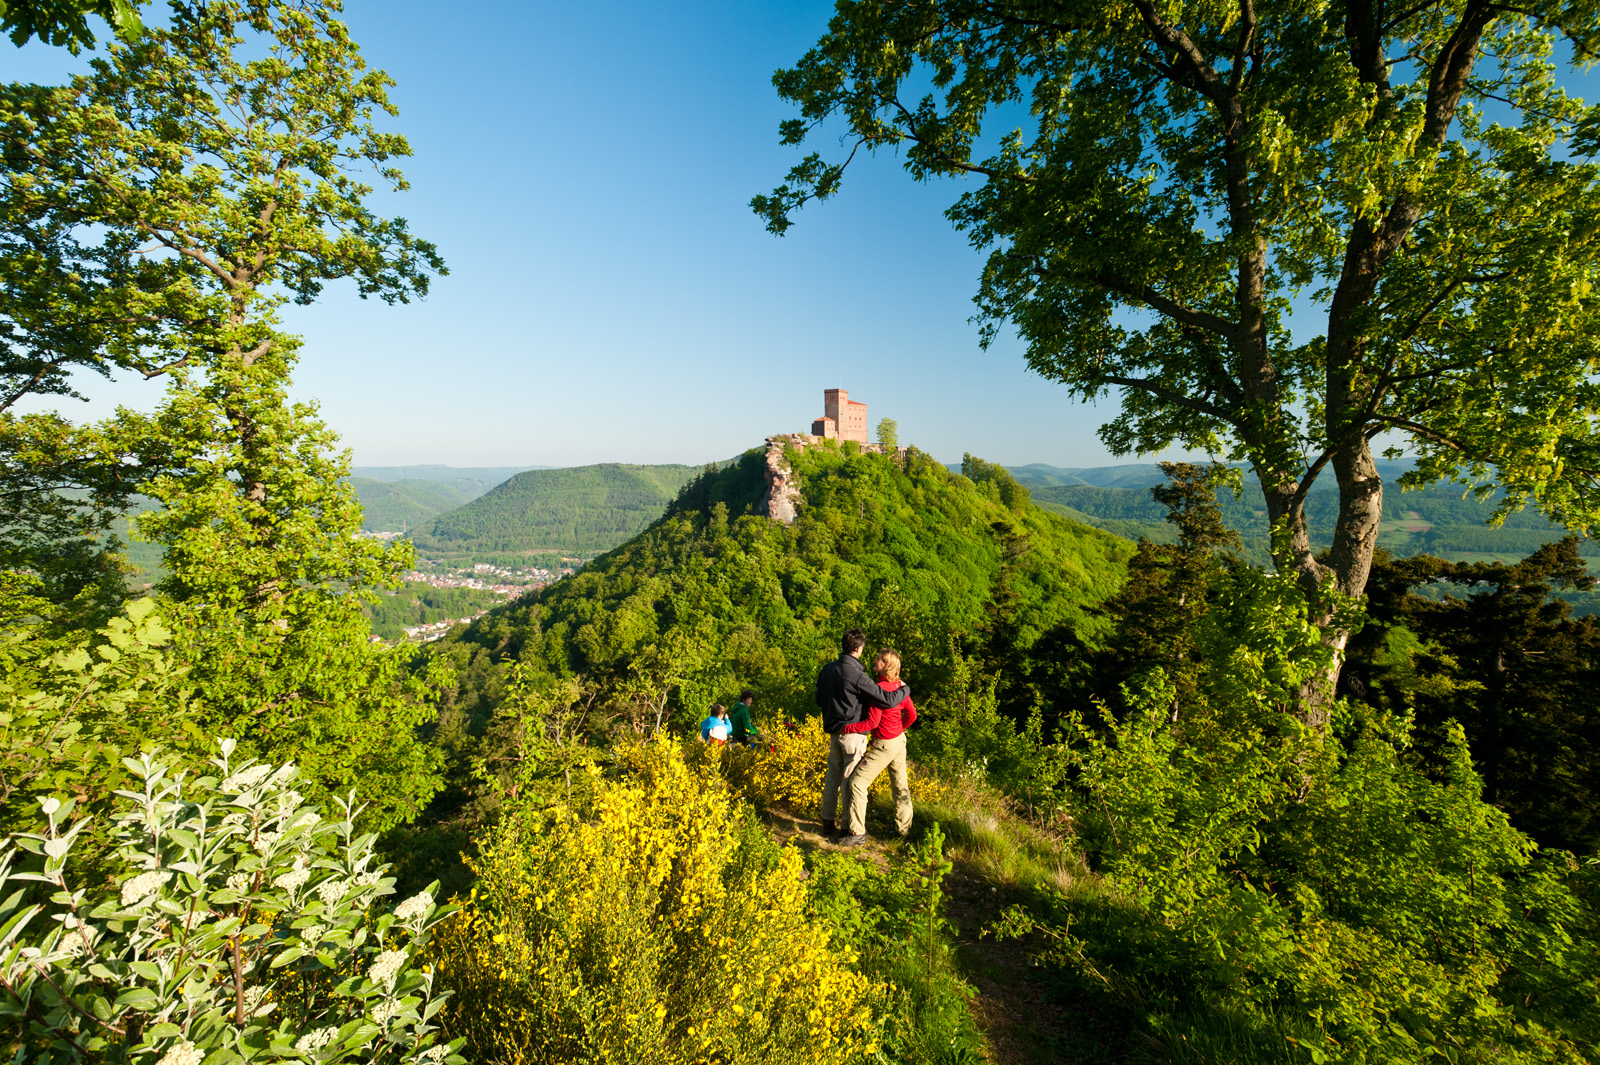 View of Trifels Castle near Annweiler am Trifels, Palatinate